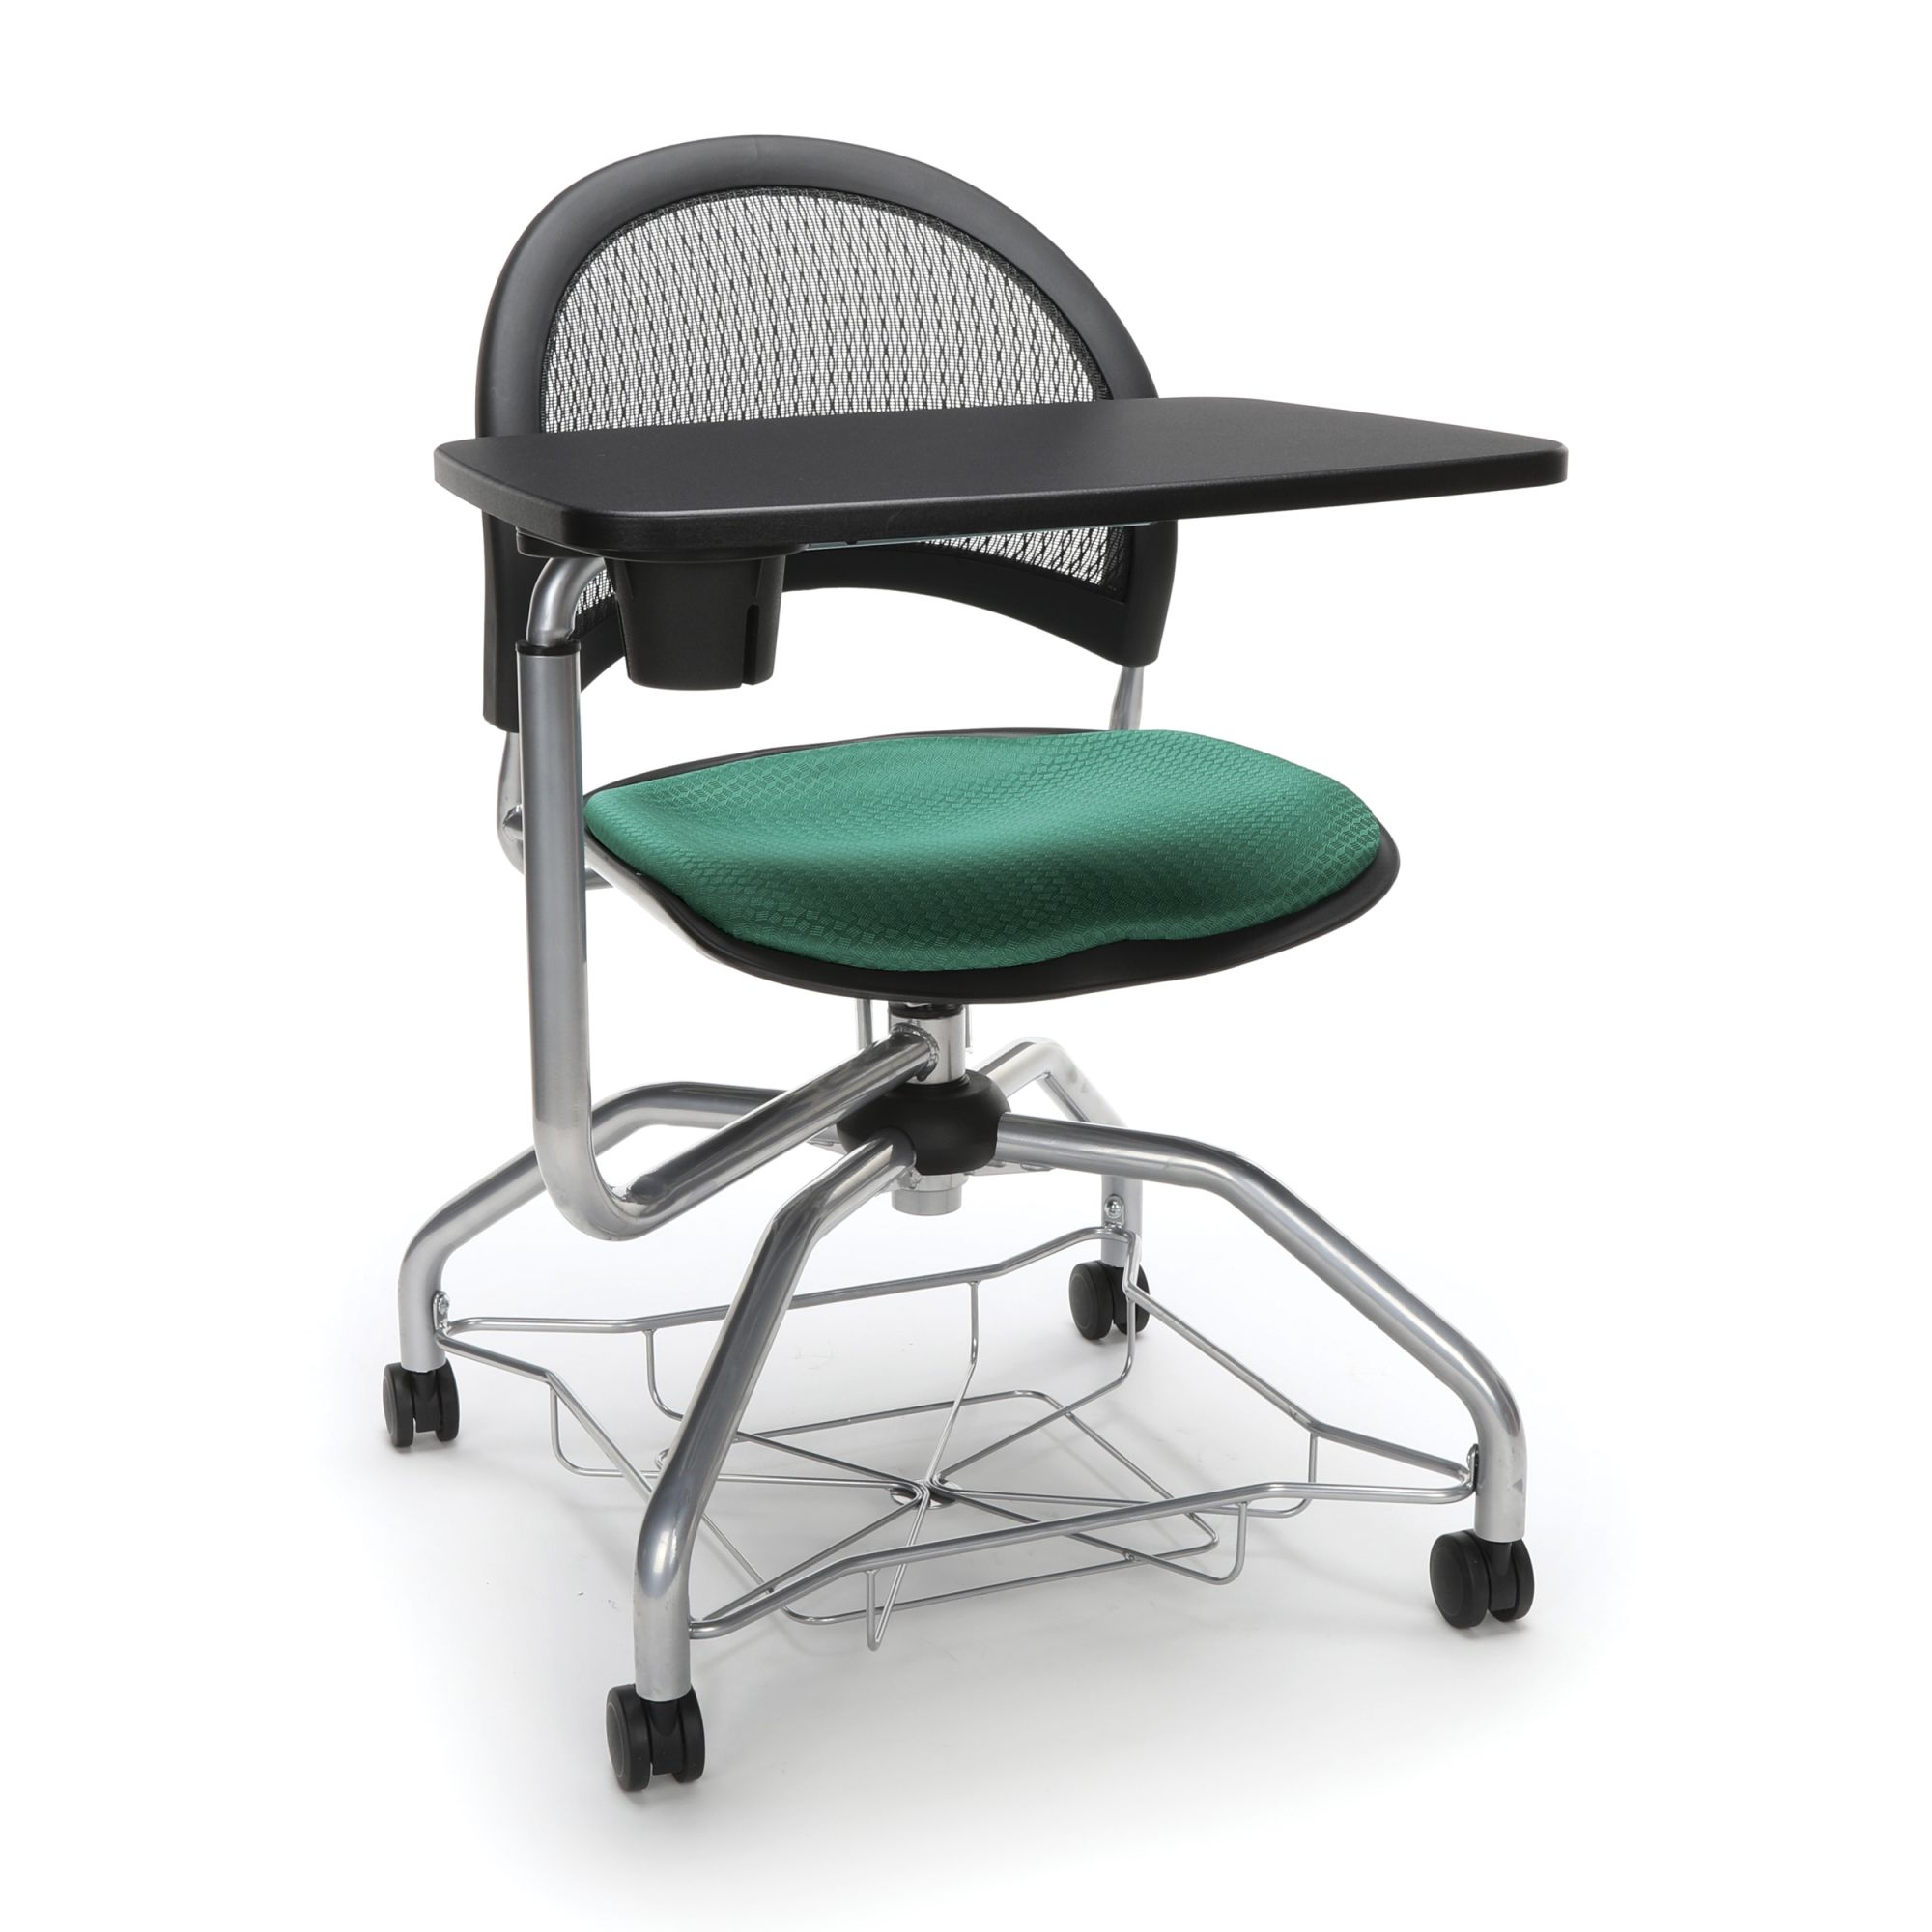 OFM Moon Foresee Series Tablet Chair with Removable Fabric Seat Cushion - Student Desk Chair, Shamrock Green (339T)